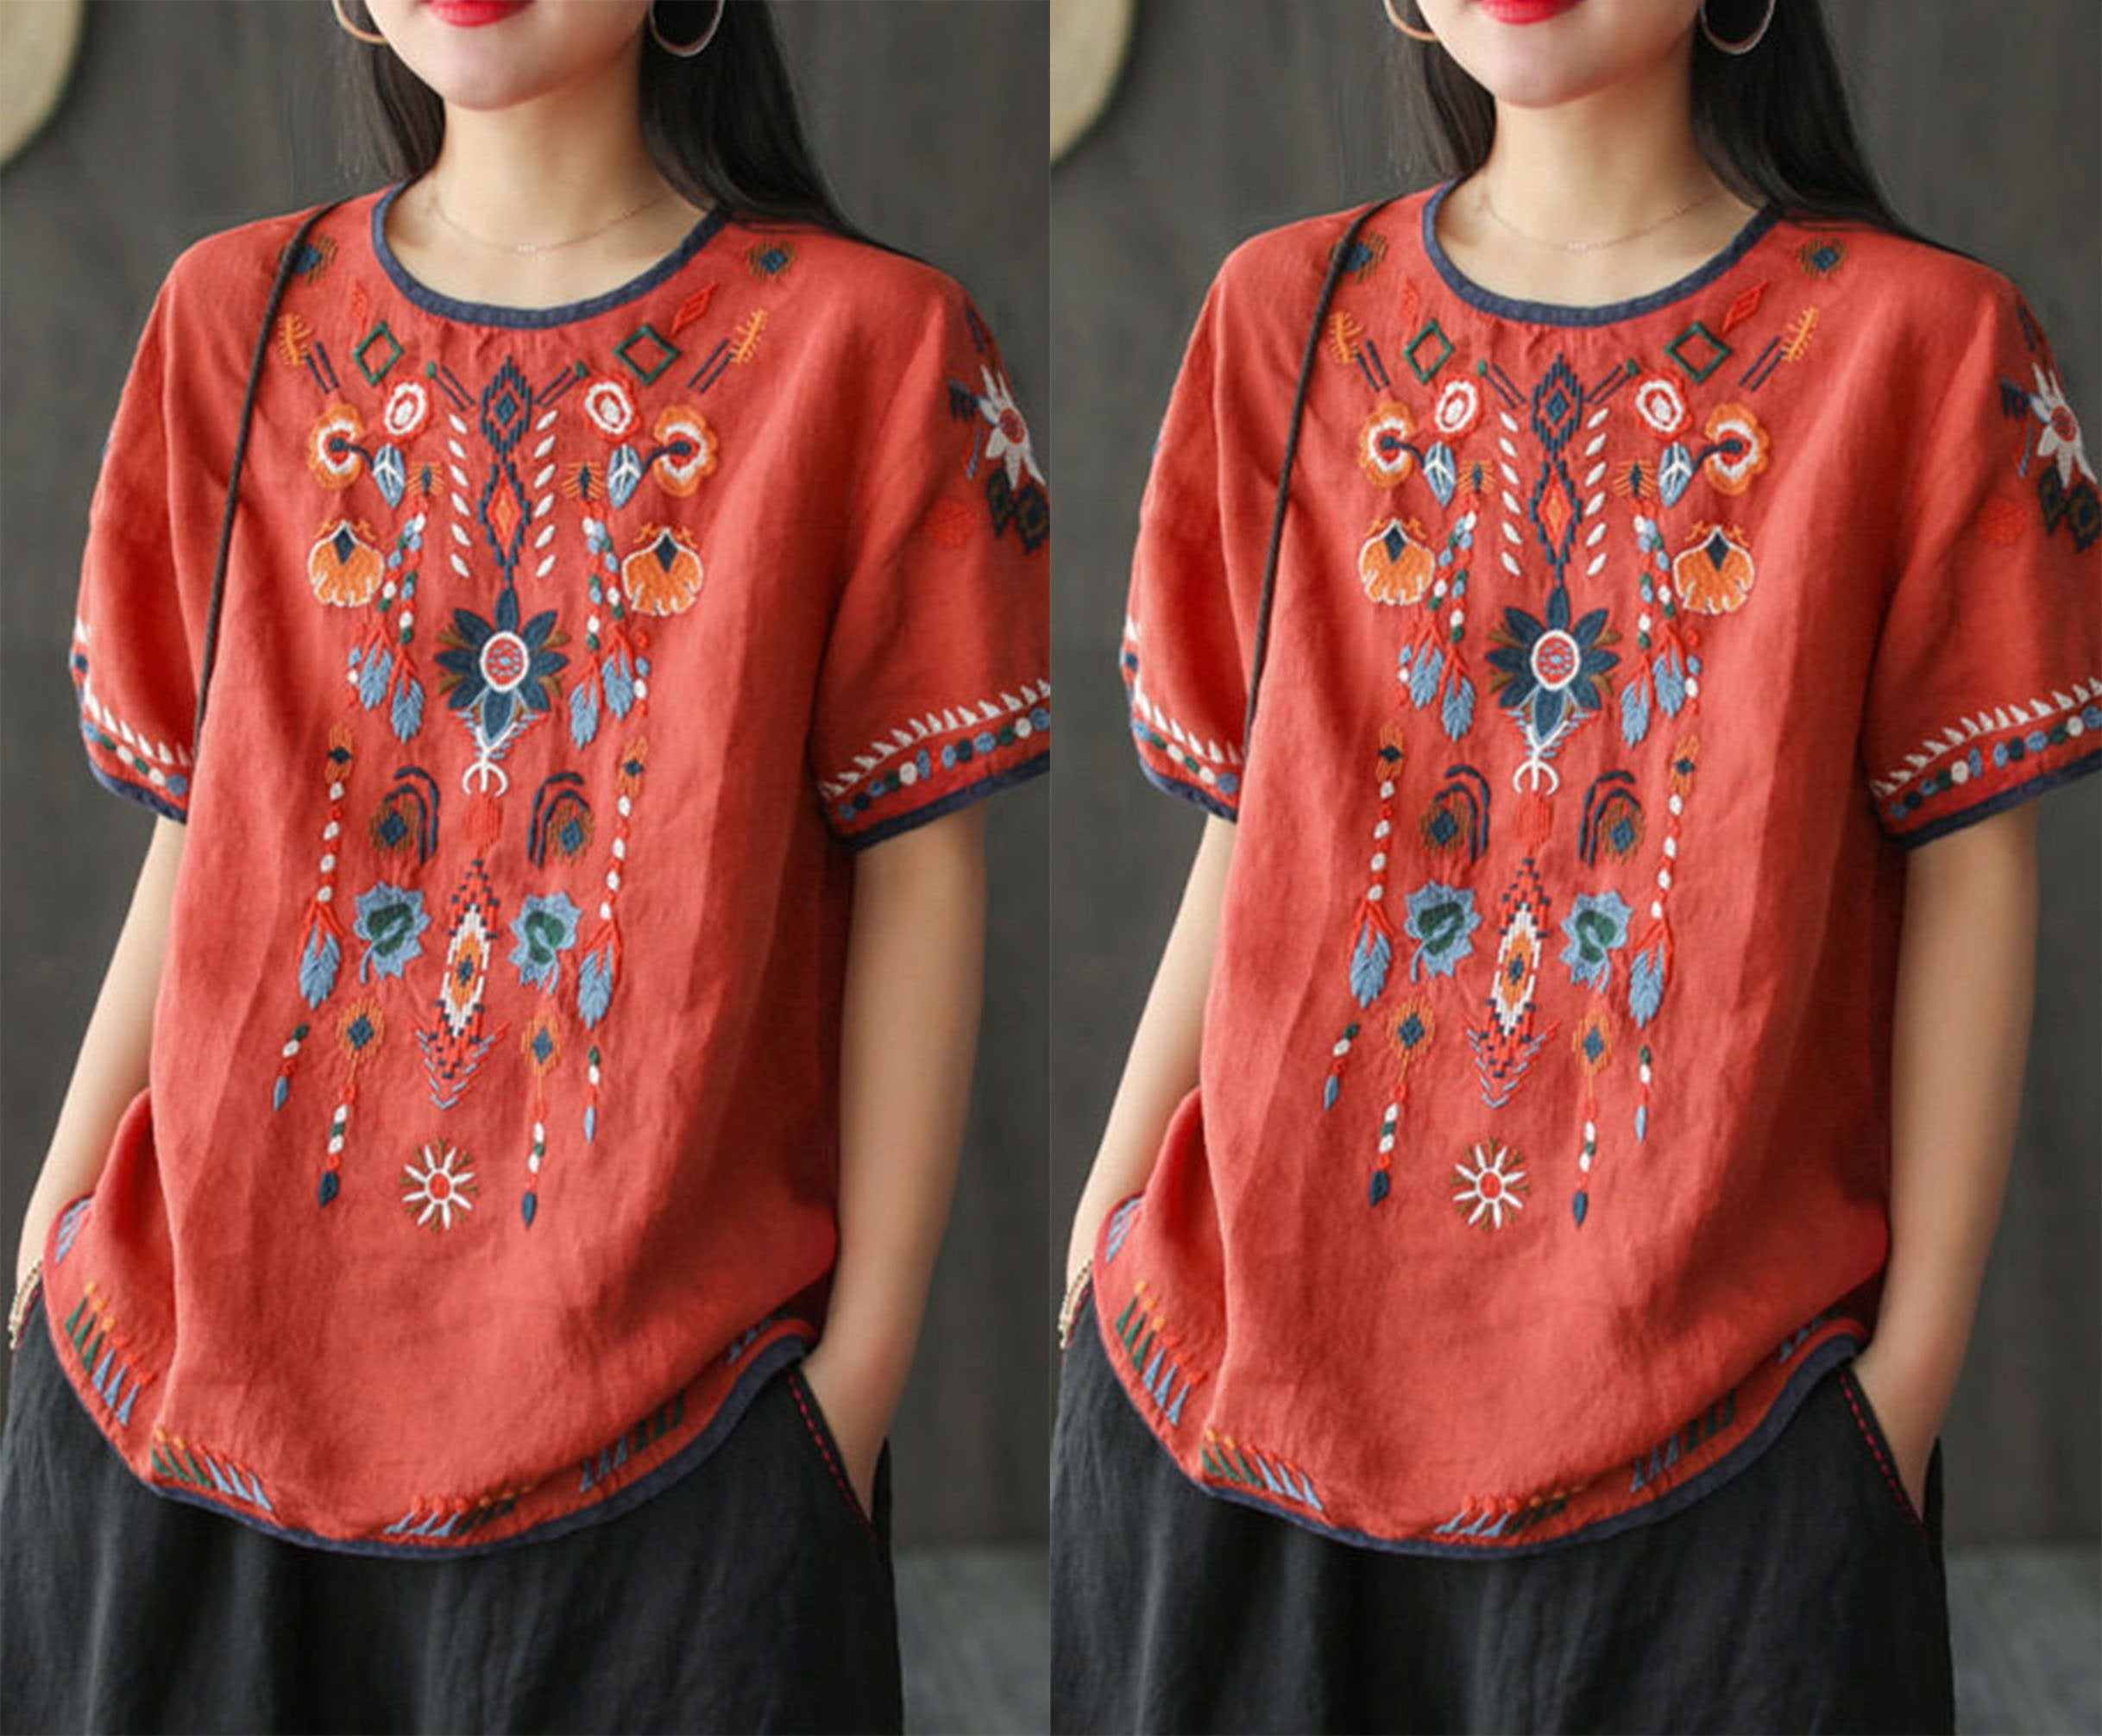 【Buy 1 free 1】2020 Retro literary embroidery loose T-shirt